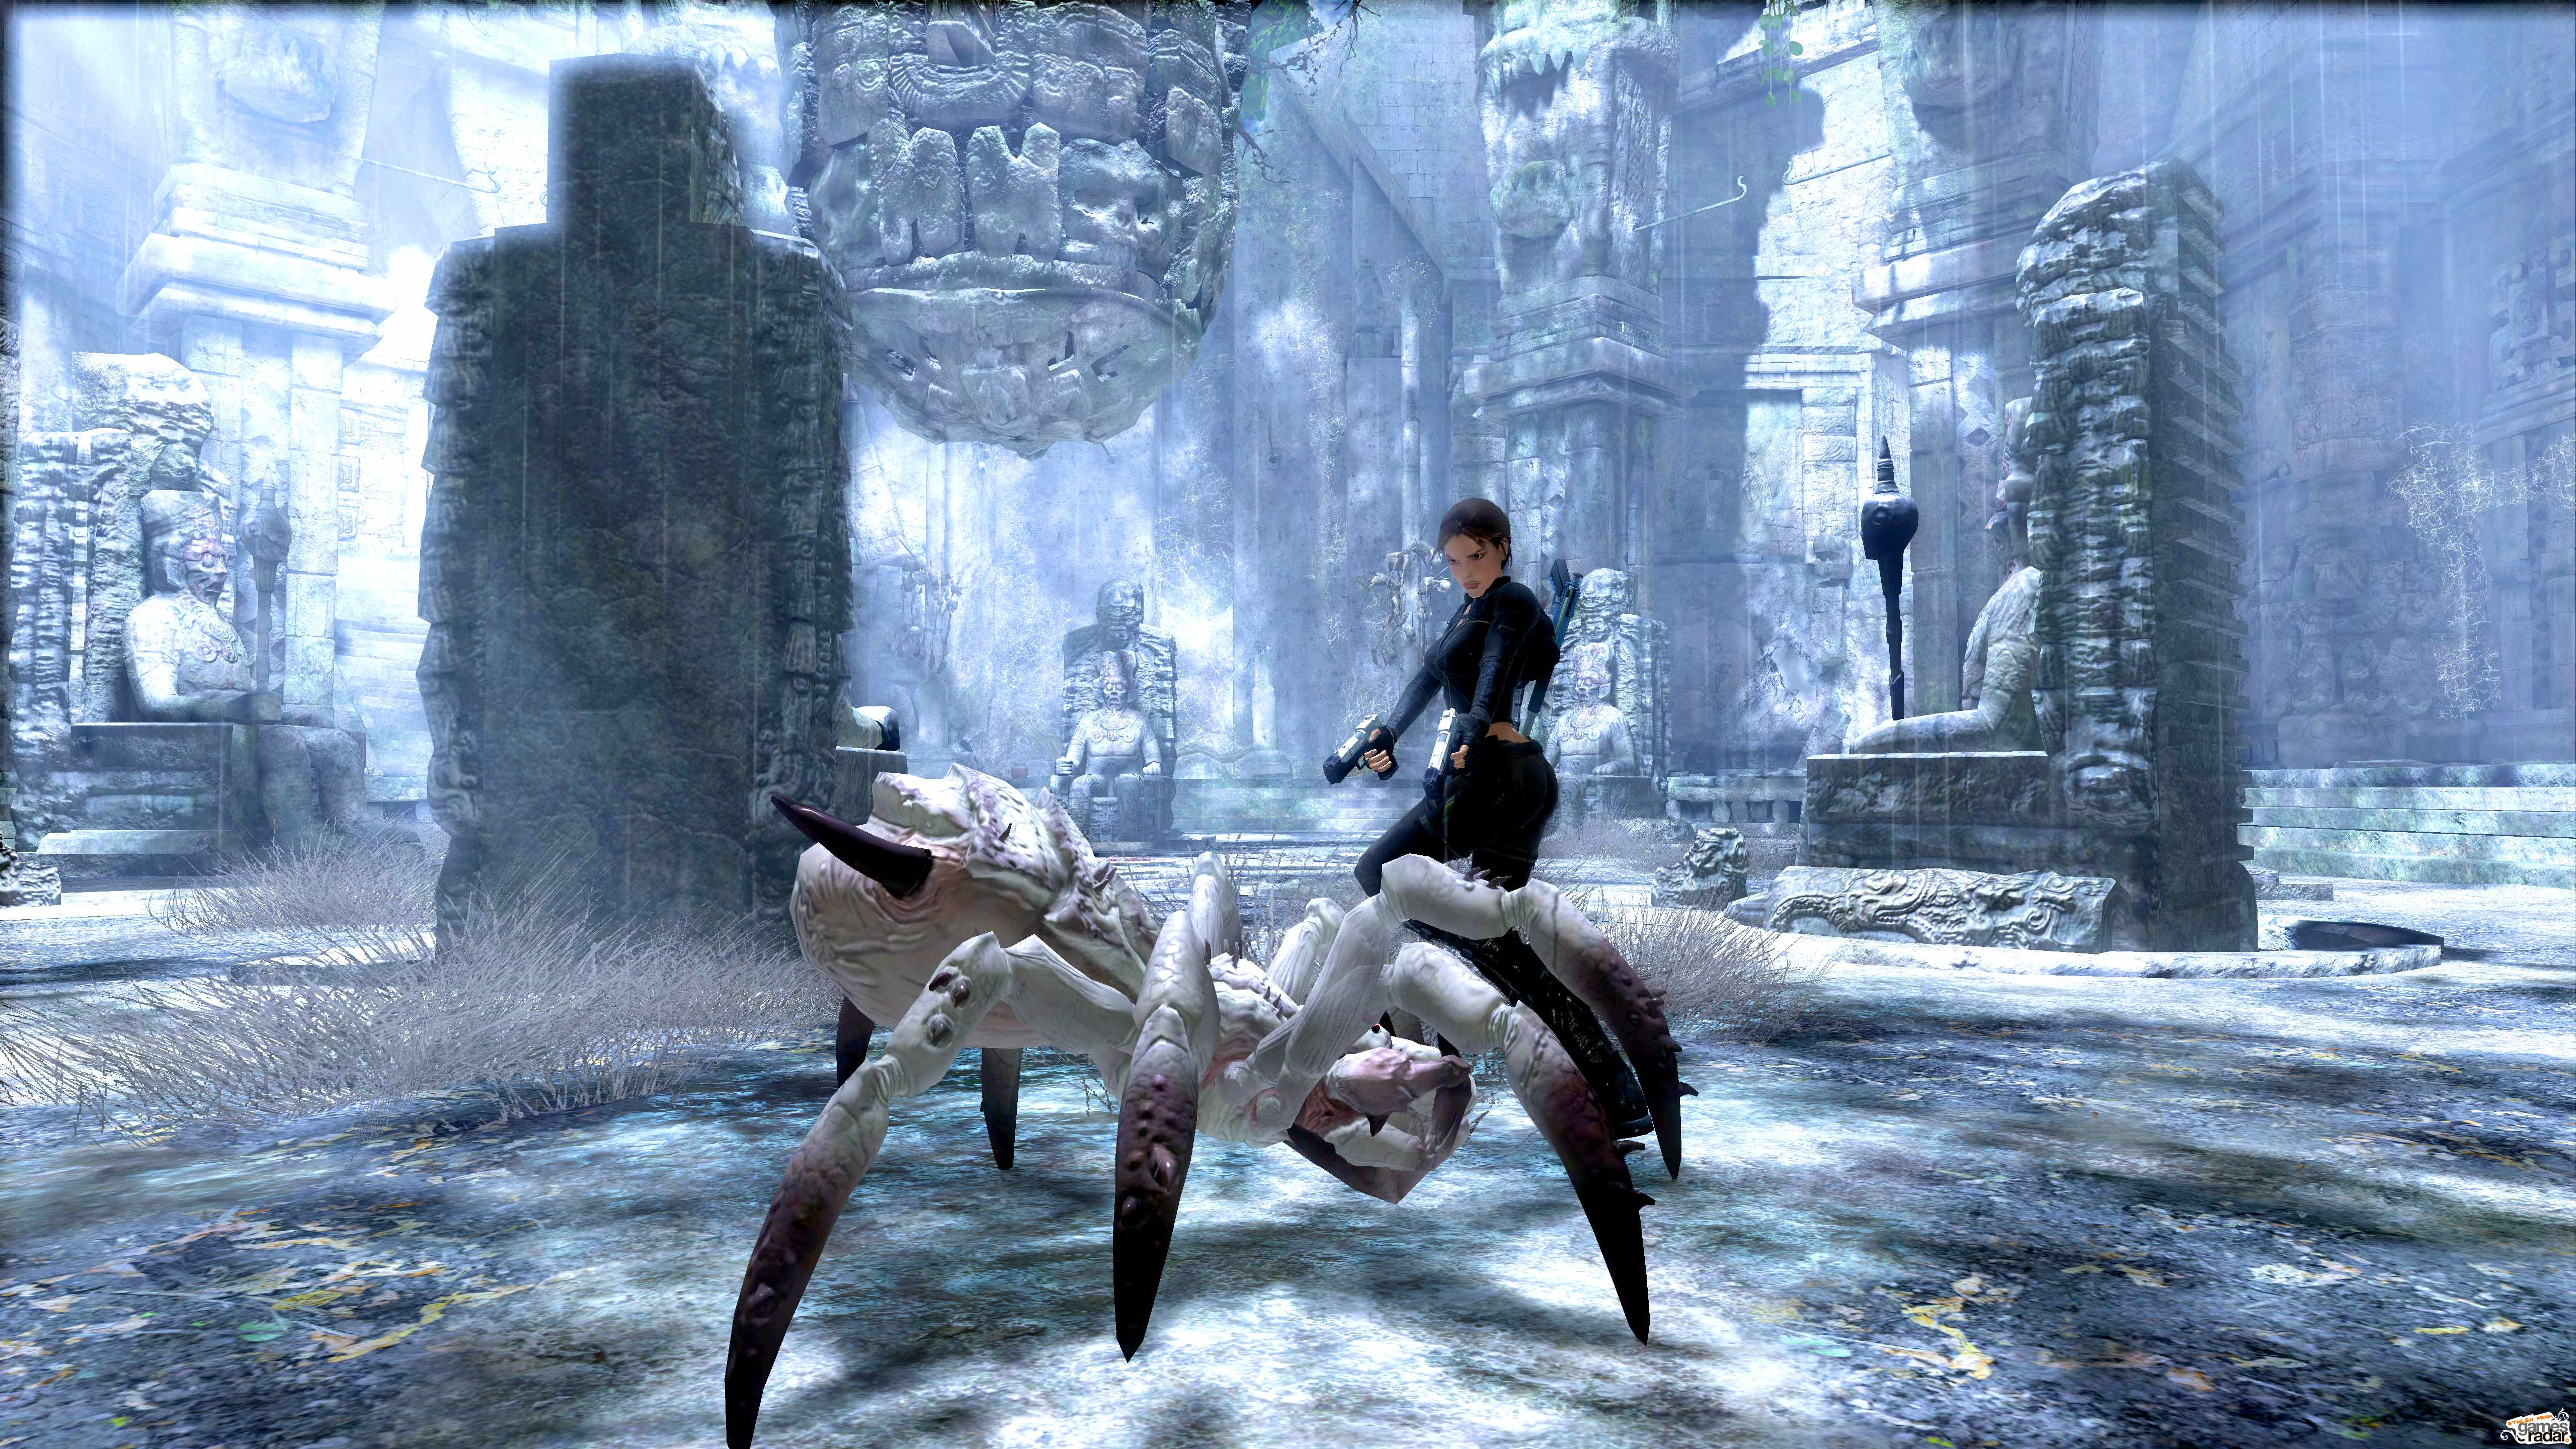 Download wallpaper from game Tomb Raider with tags: Desktop, Tomb